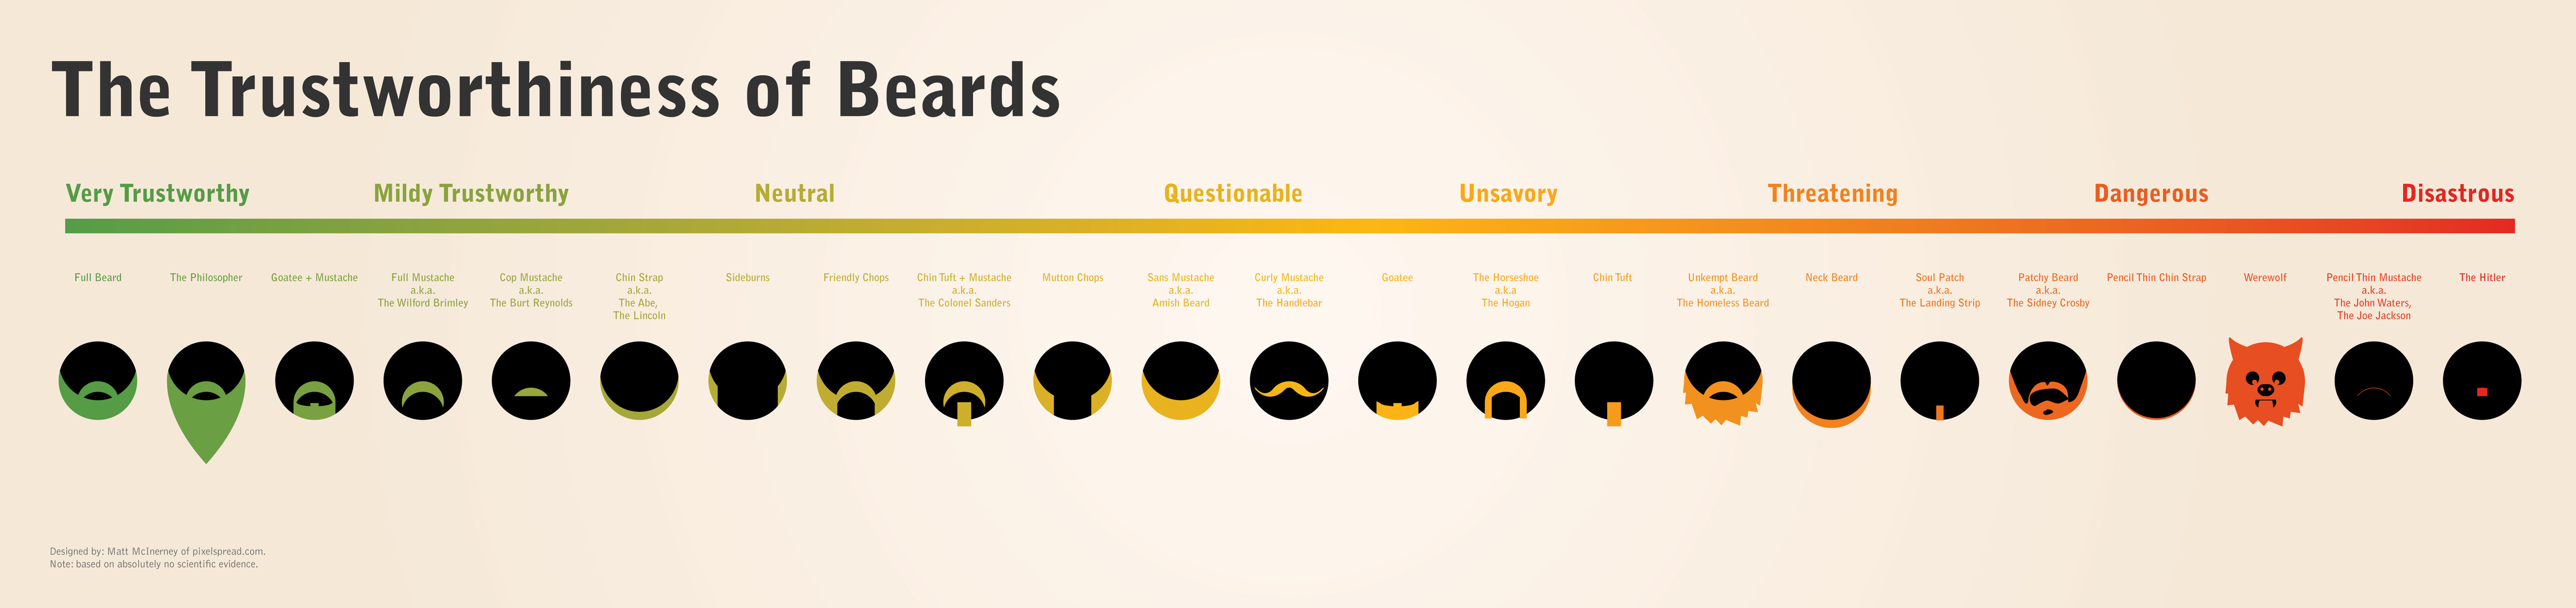 graphic design art display of chart of beards and moustaches